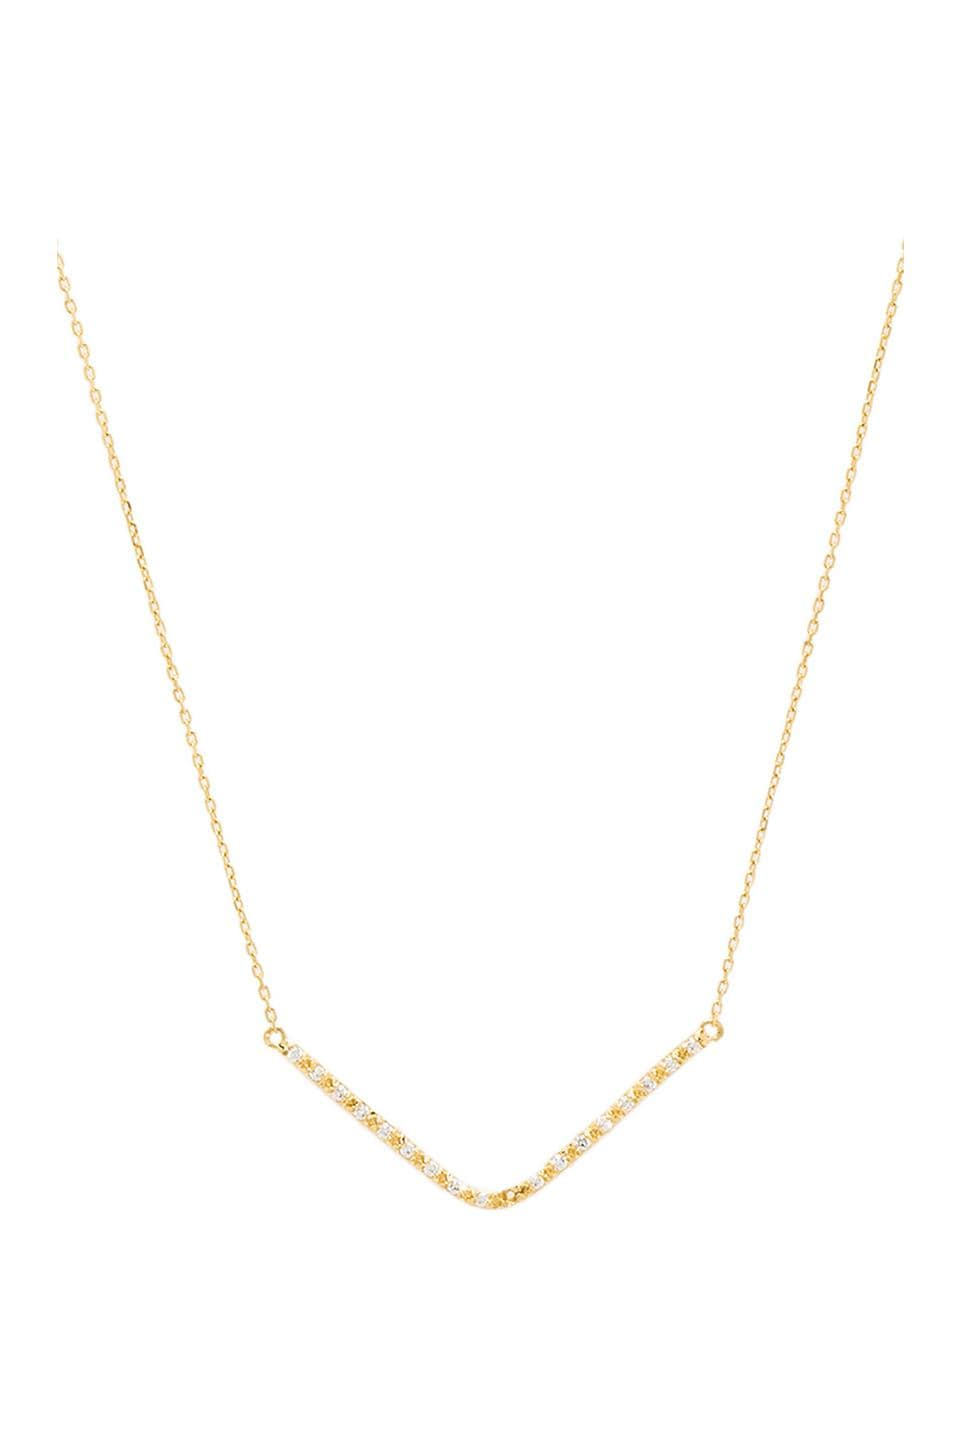 Lucky Star Vela Necklace in Gold & Clear